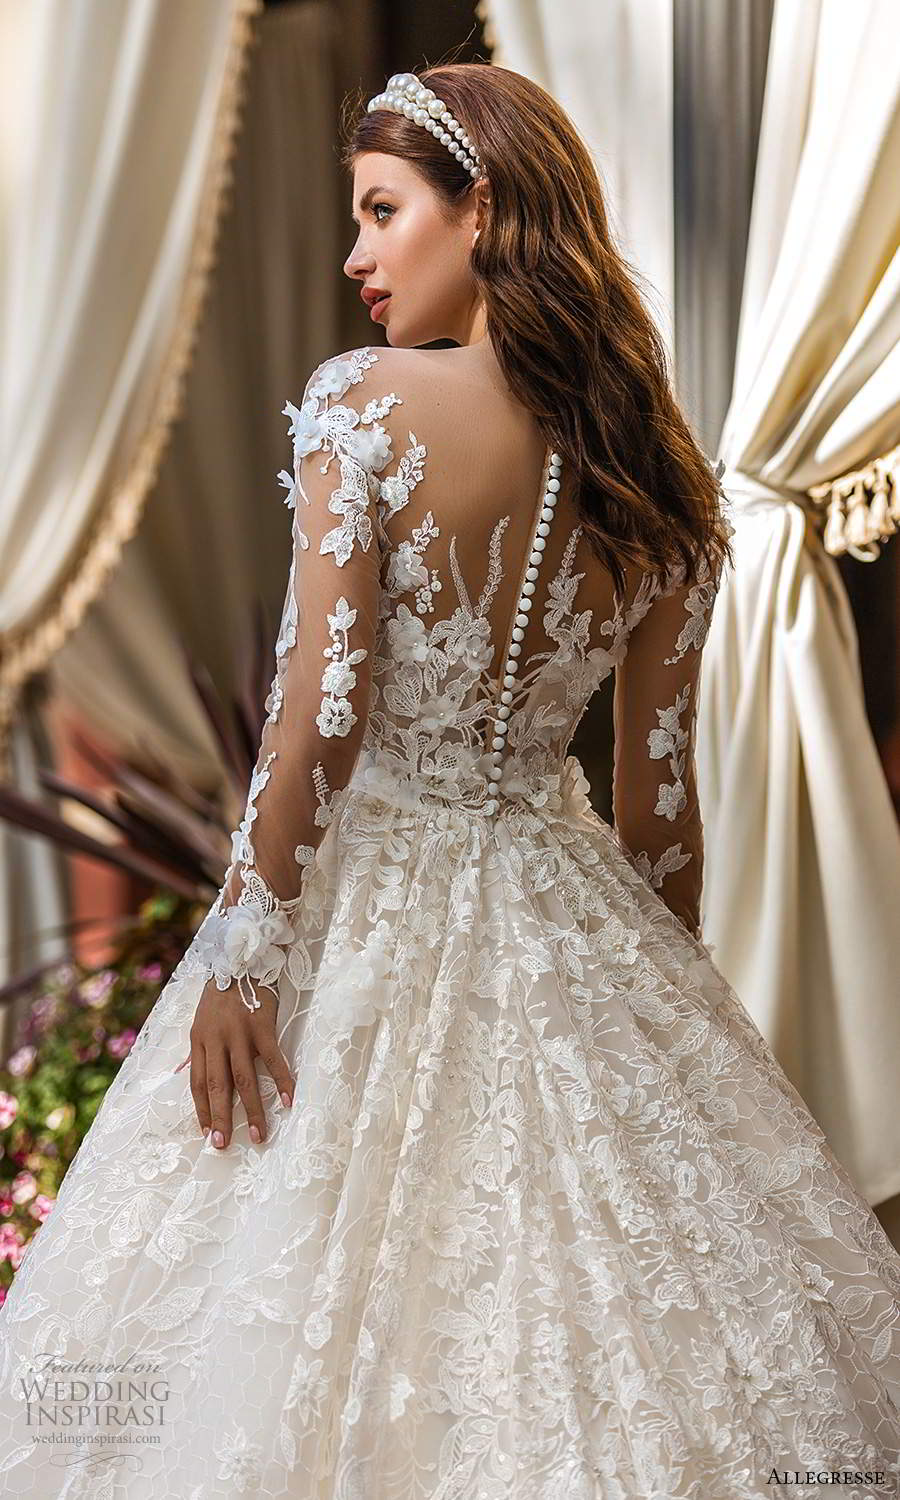 allegresse 2021 bridal illusion long sleeves off shoulder sweetheart neckline fully embellished a line ball gown wedding dress chapel train (5) zbv